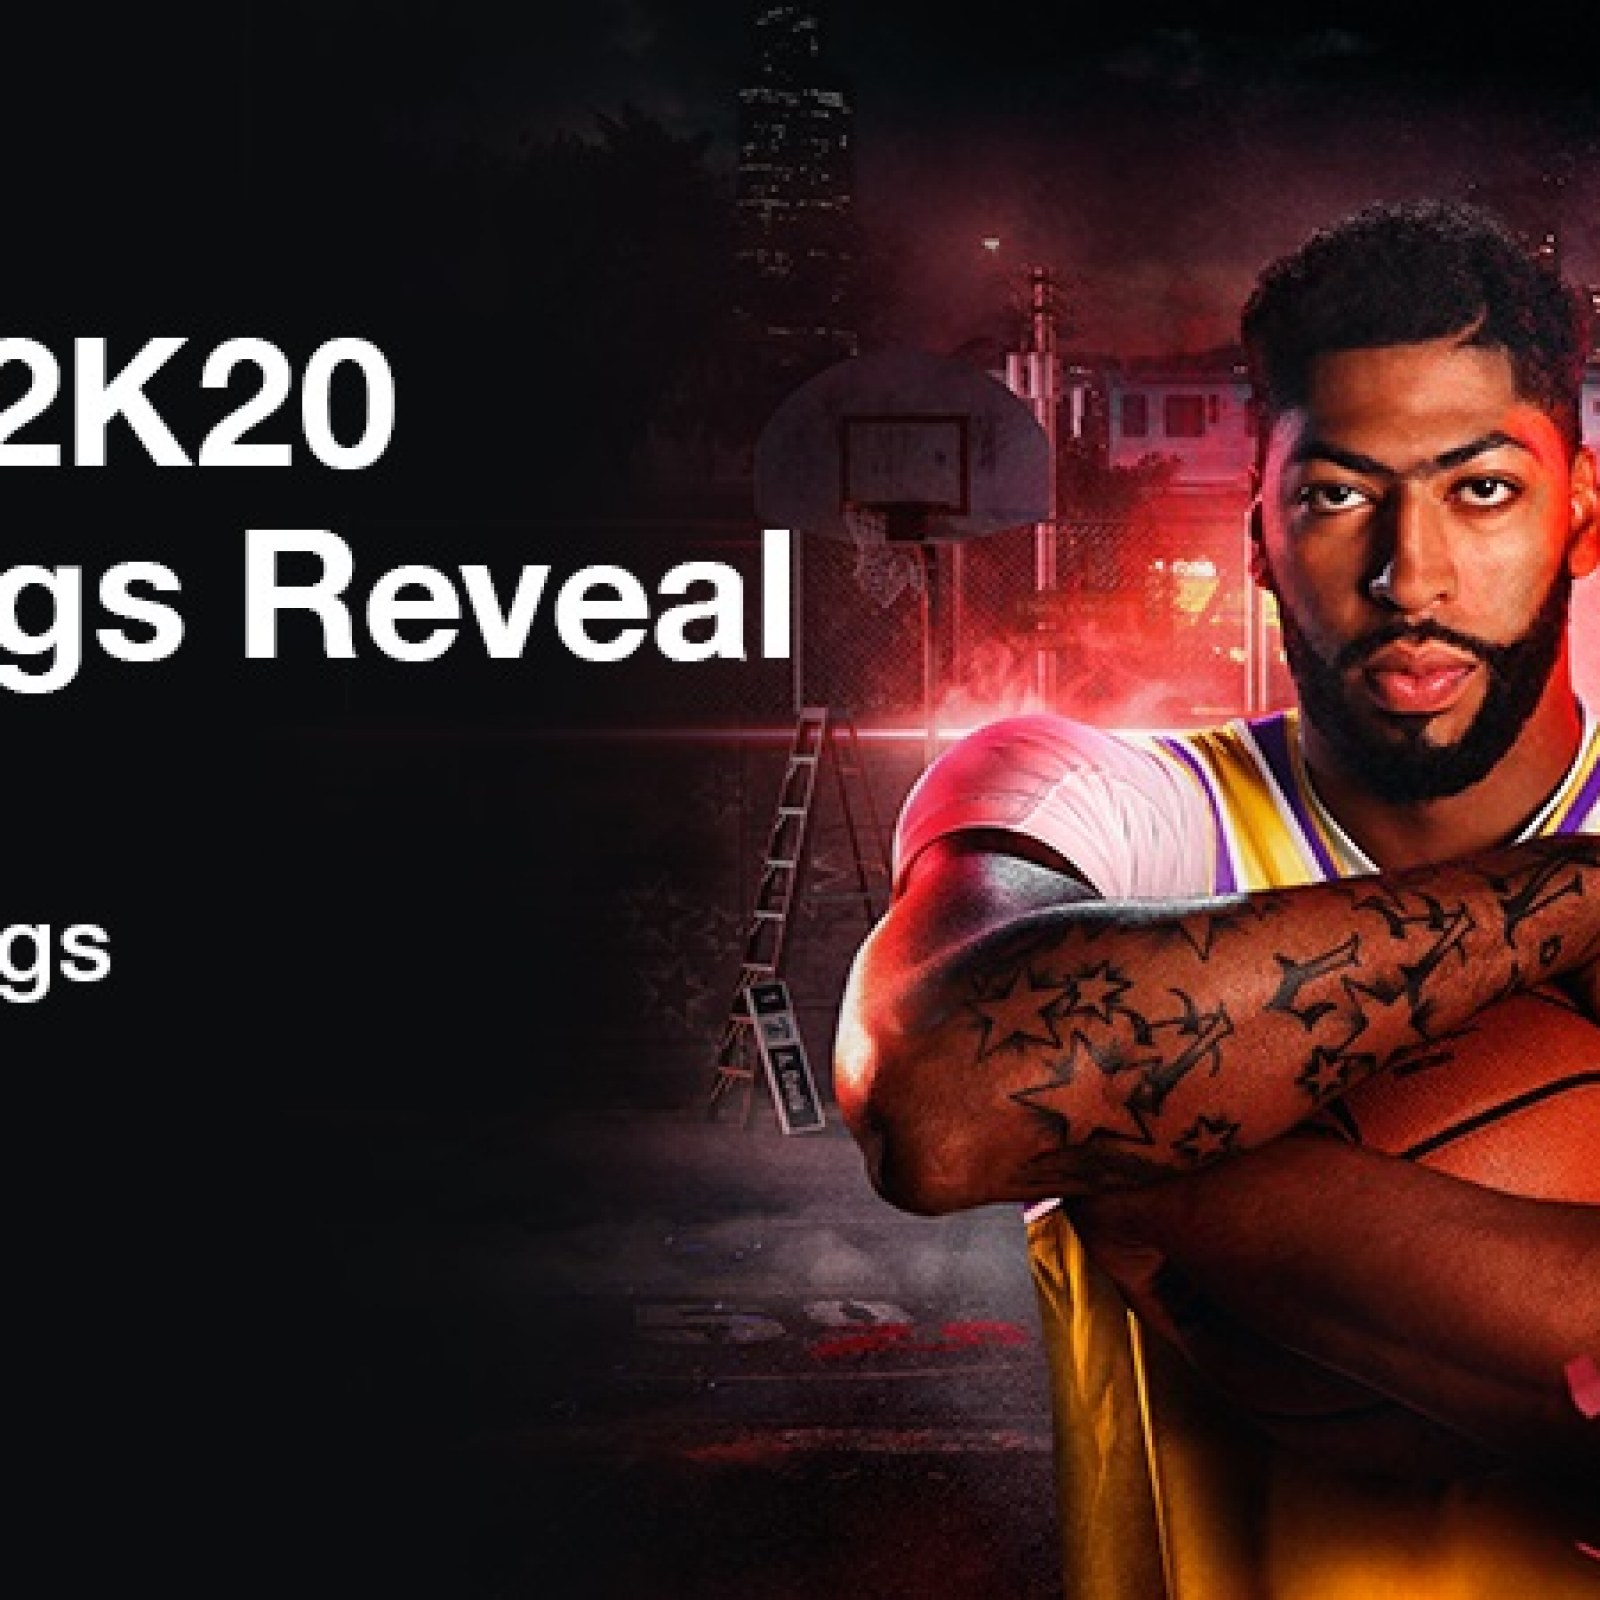 Nba 2k20 Ratings Reveal Livestream Start Time And How To